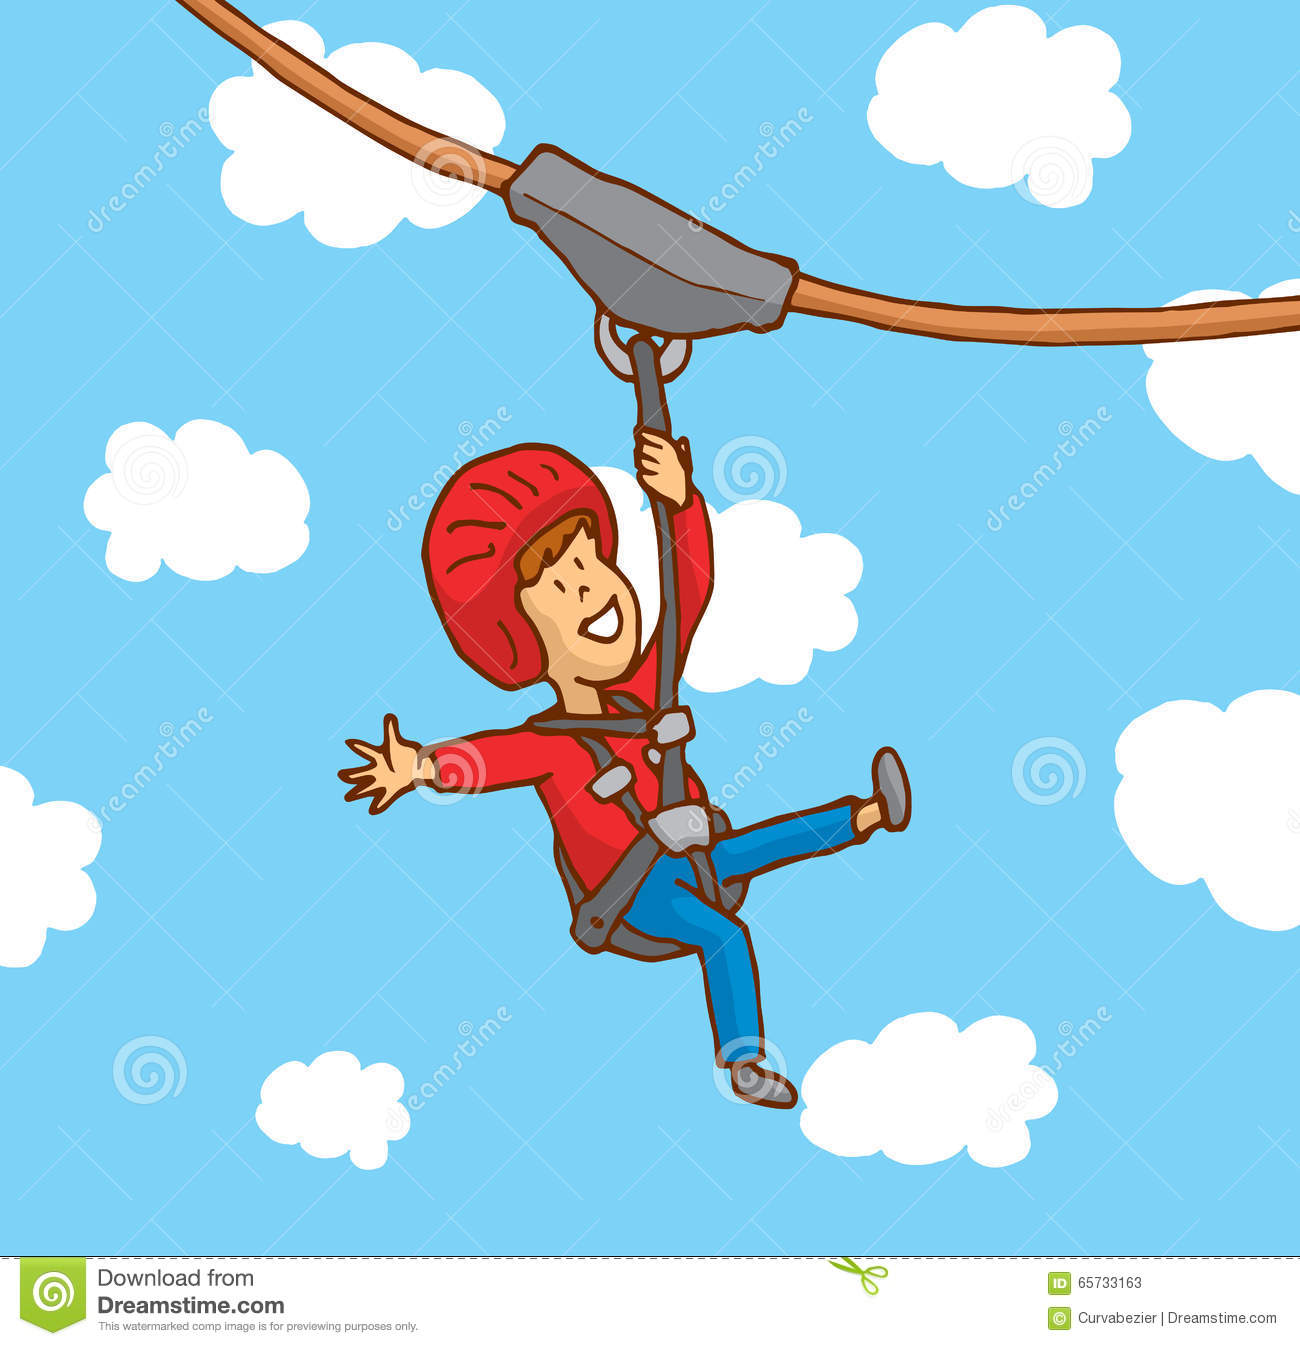 D Line Drawings Zip : Happy boy enjoying a zipline stock vector image